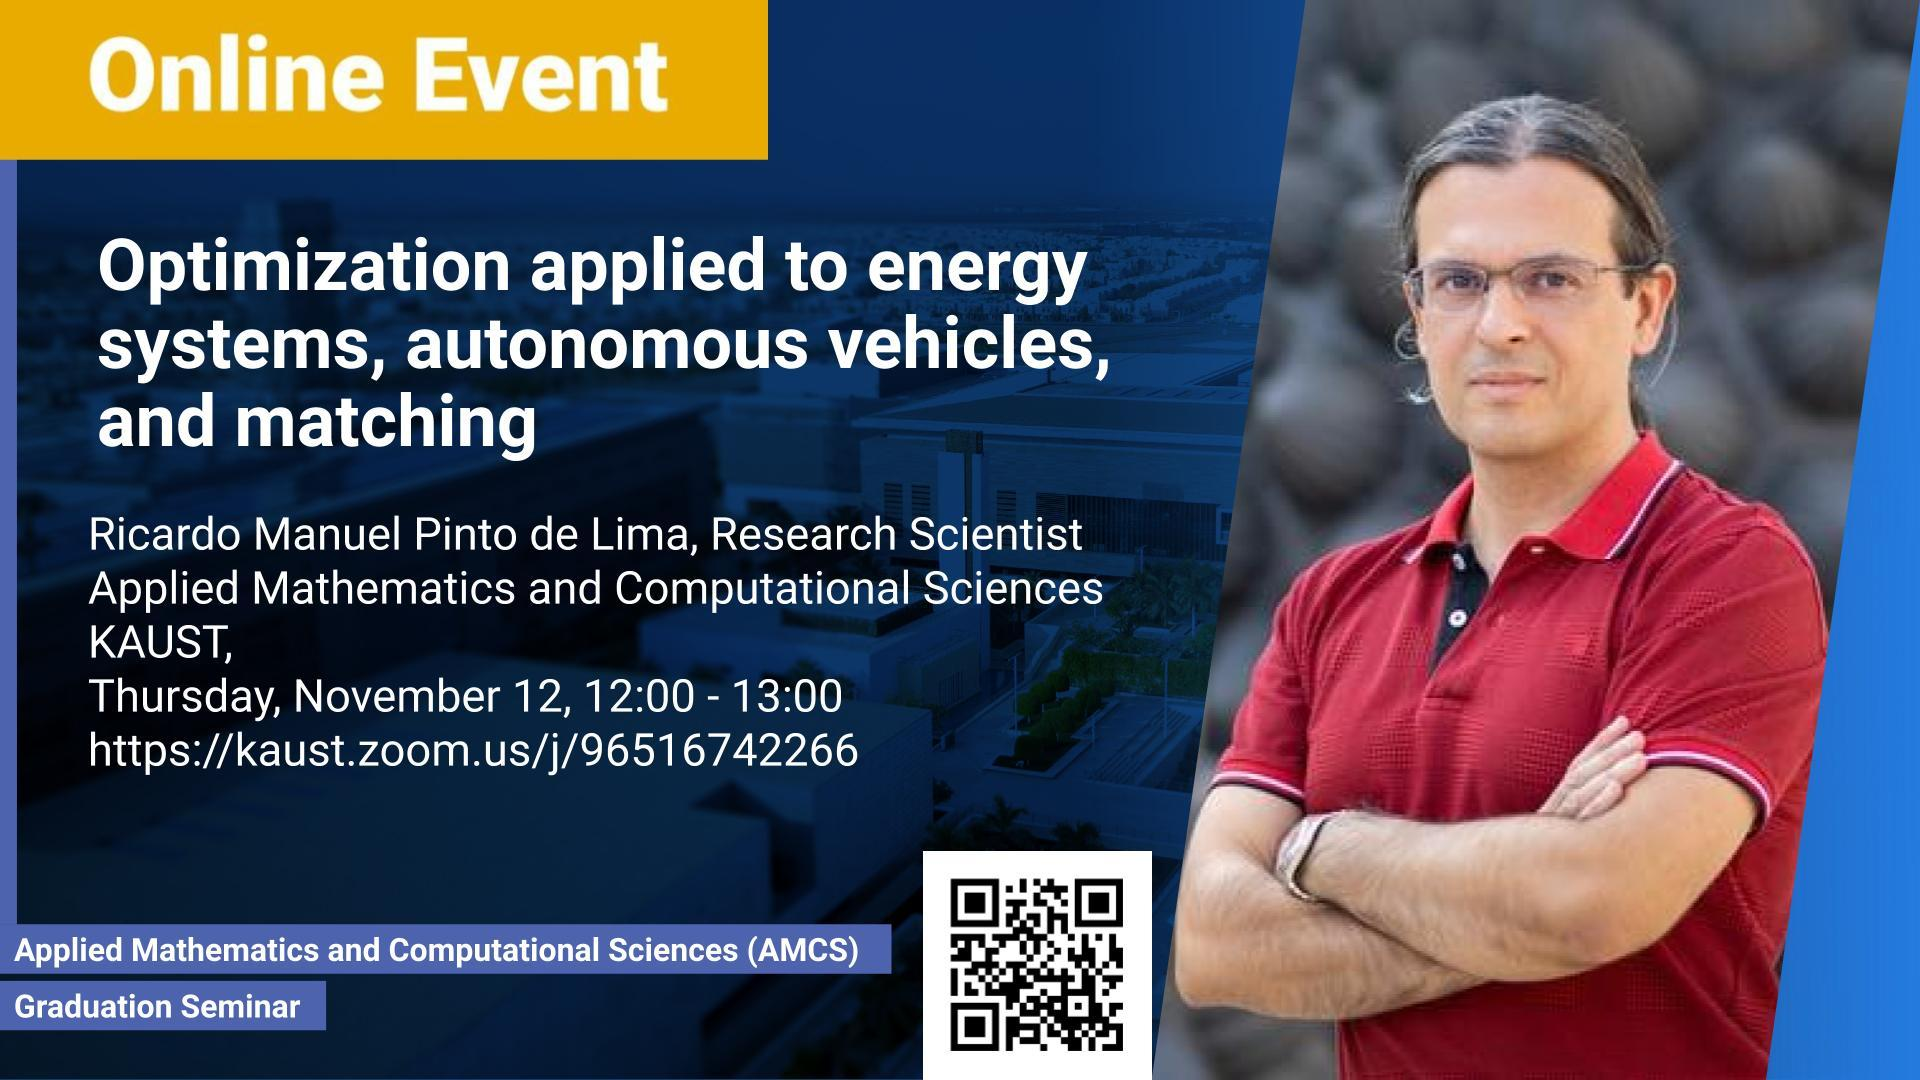 KAUST CEMSE AMCS Ricardo Manuel Pinto de Lima Optimization applied to energy systems